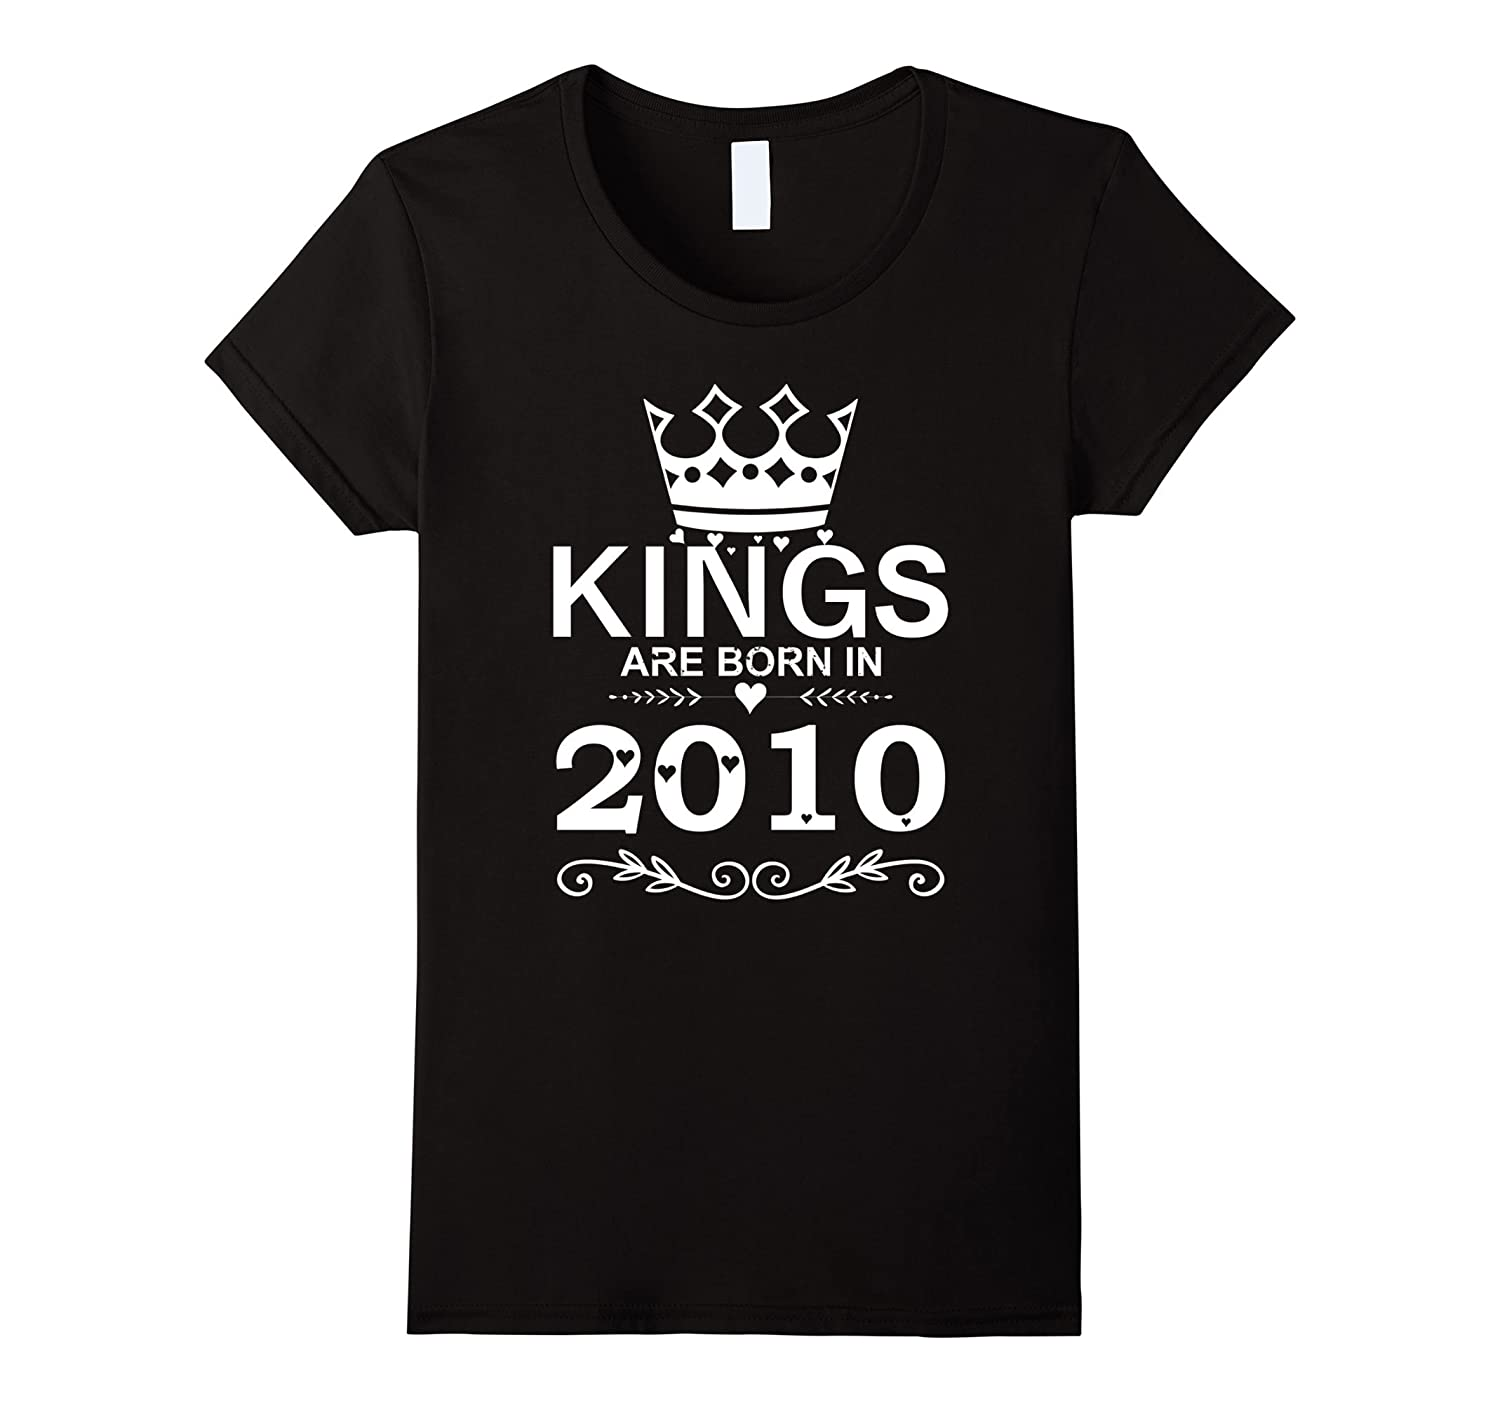 Kings Are Born In 2010 Shirt 7th Birthday Gift Boy Vintage